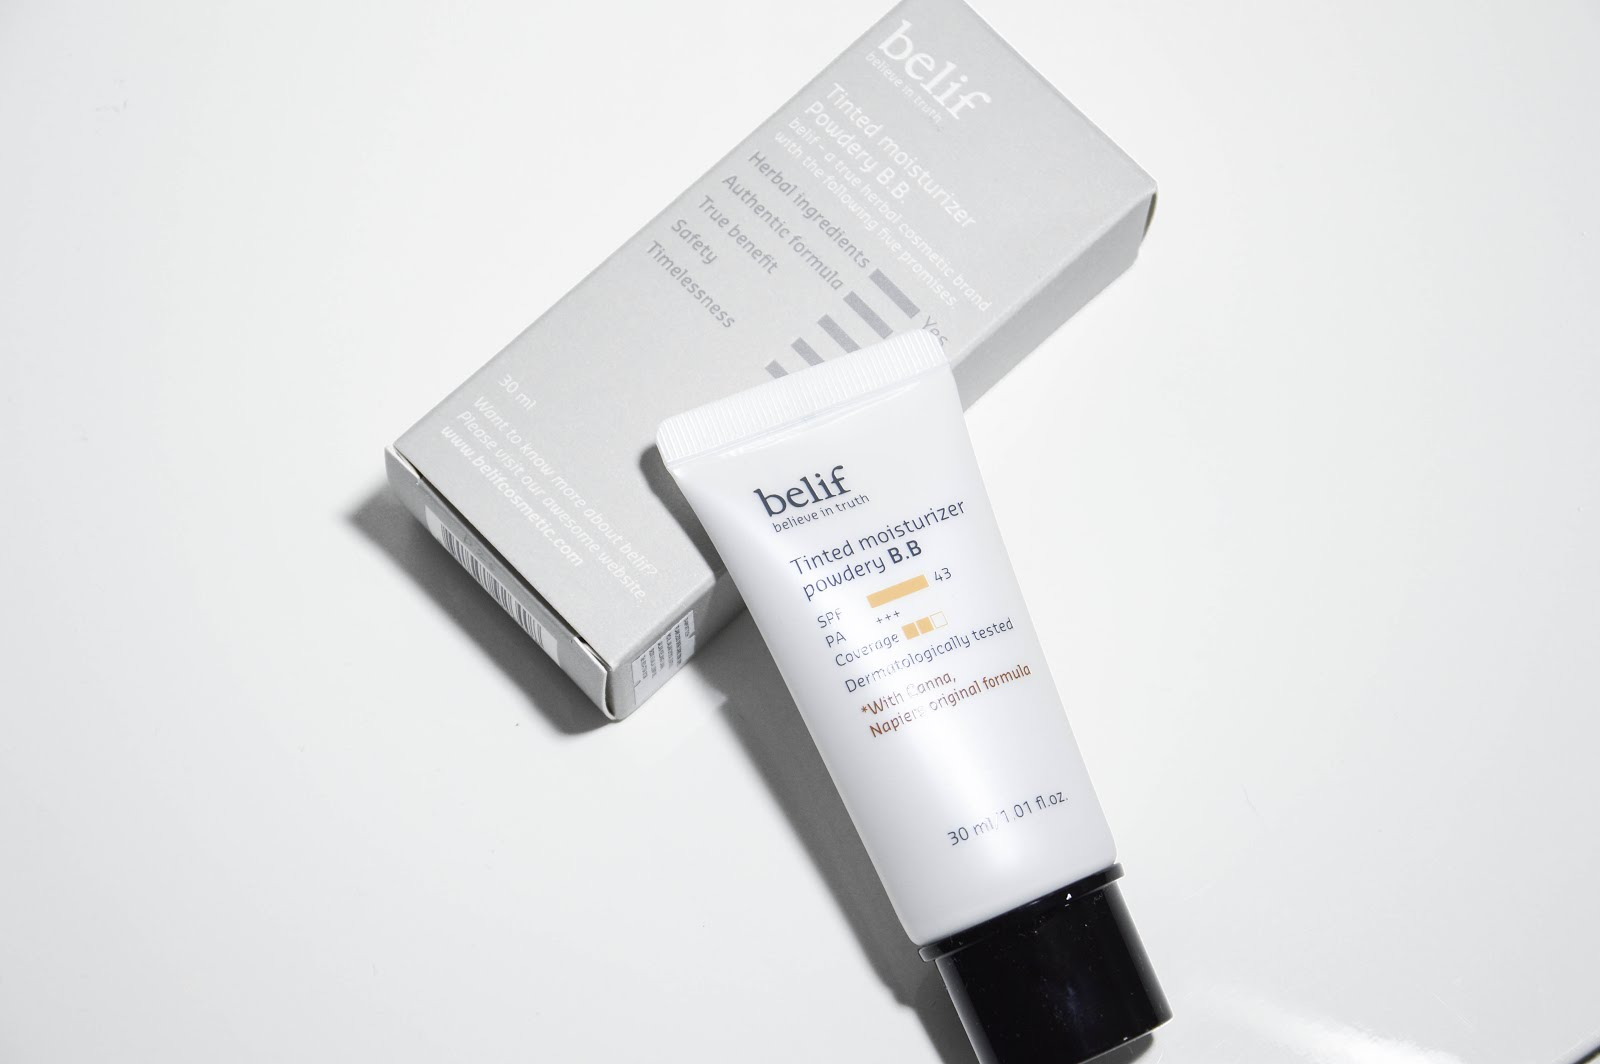 Belif Tinted Moisturizer Powdery Bb review